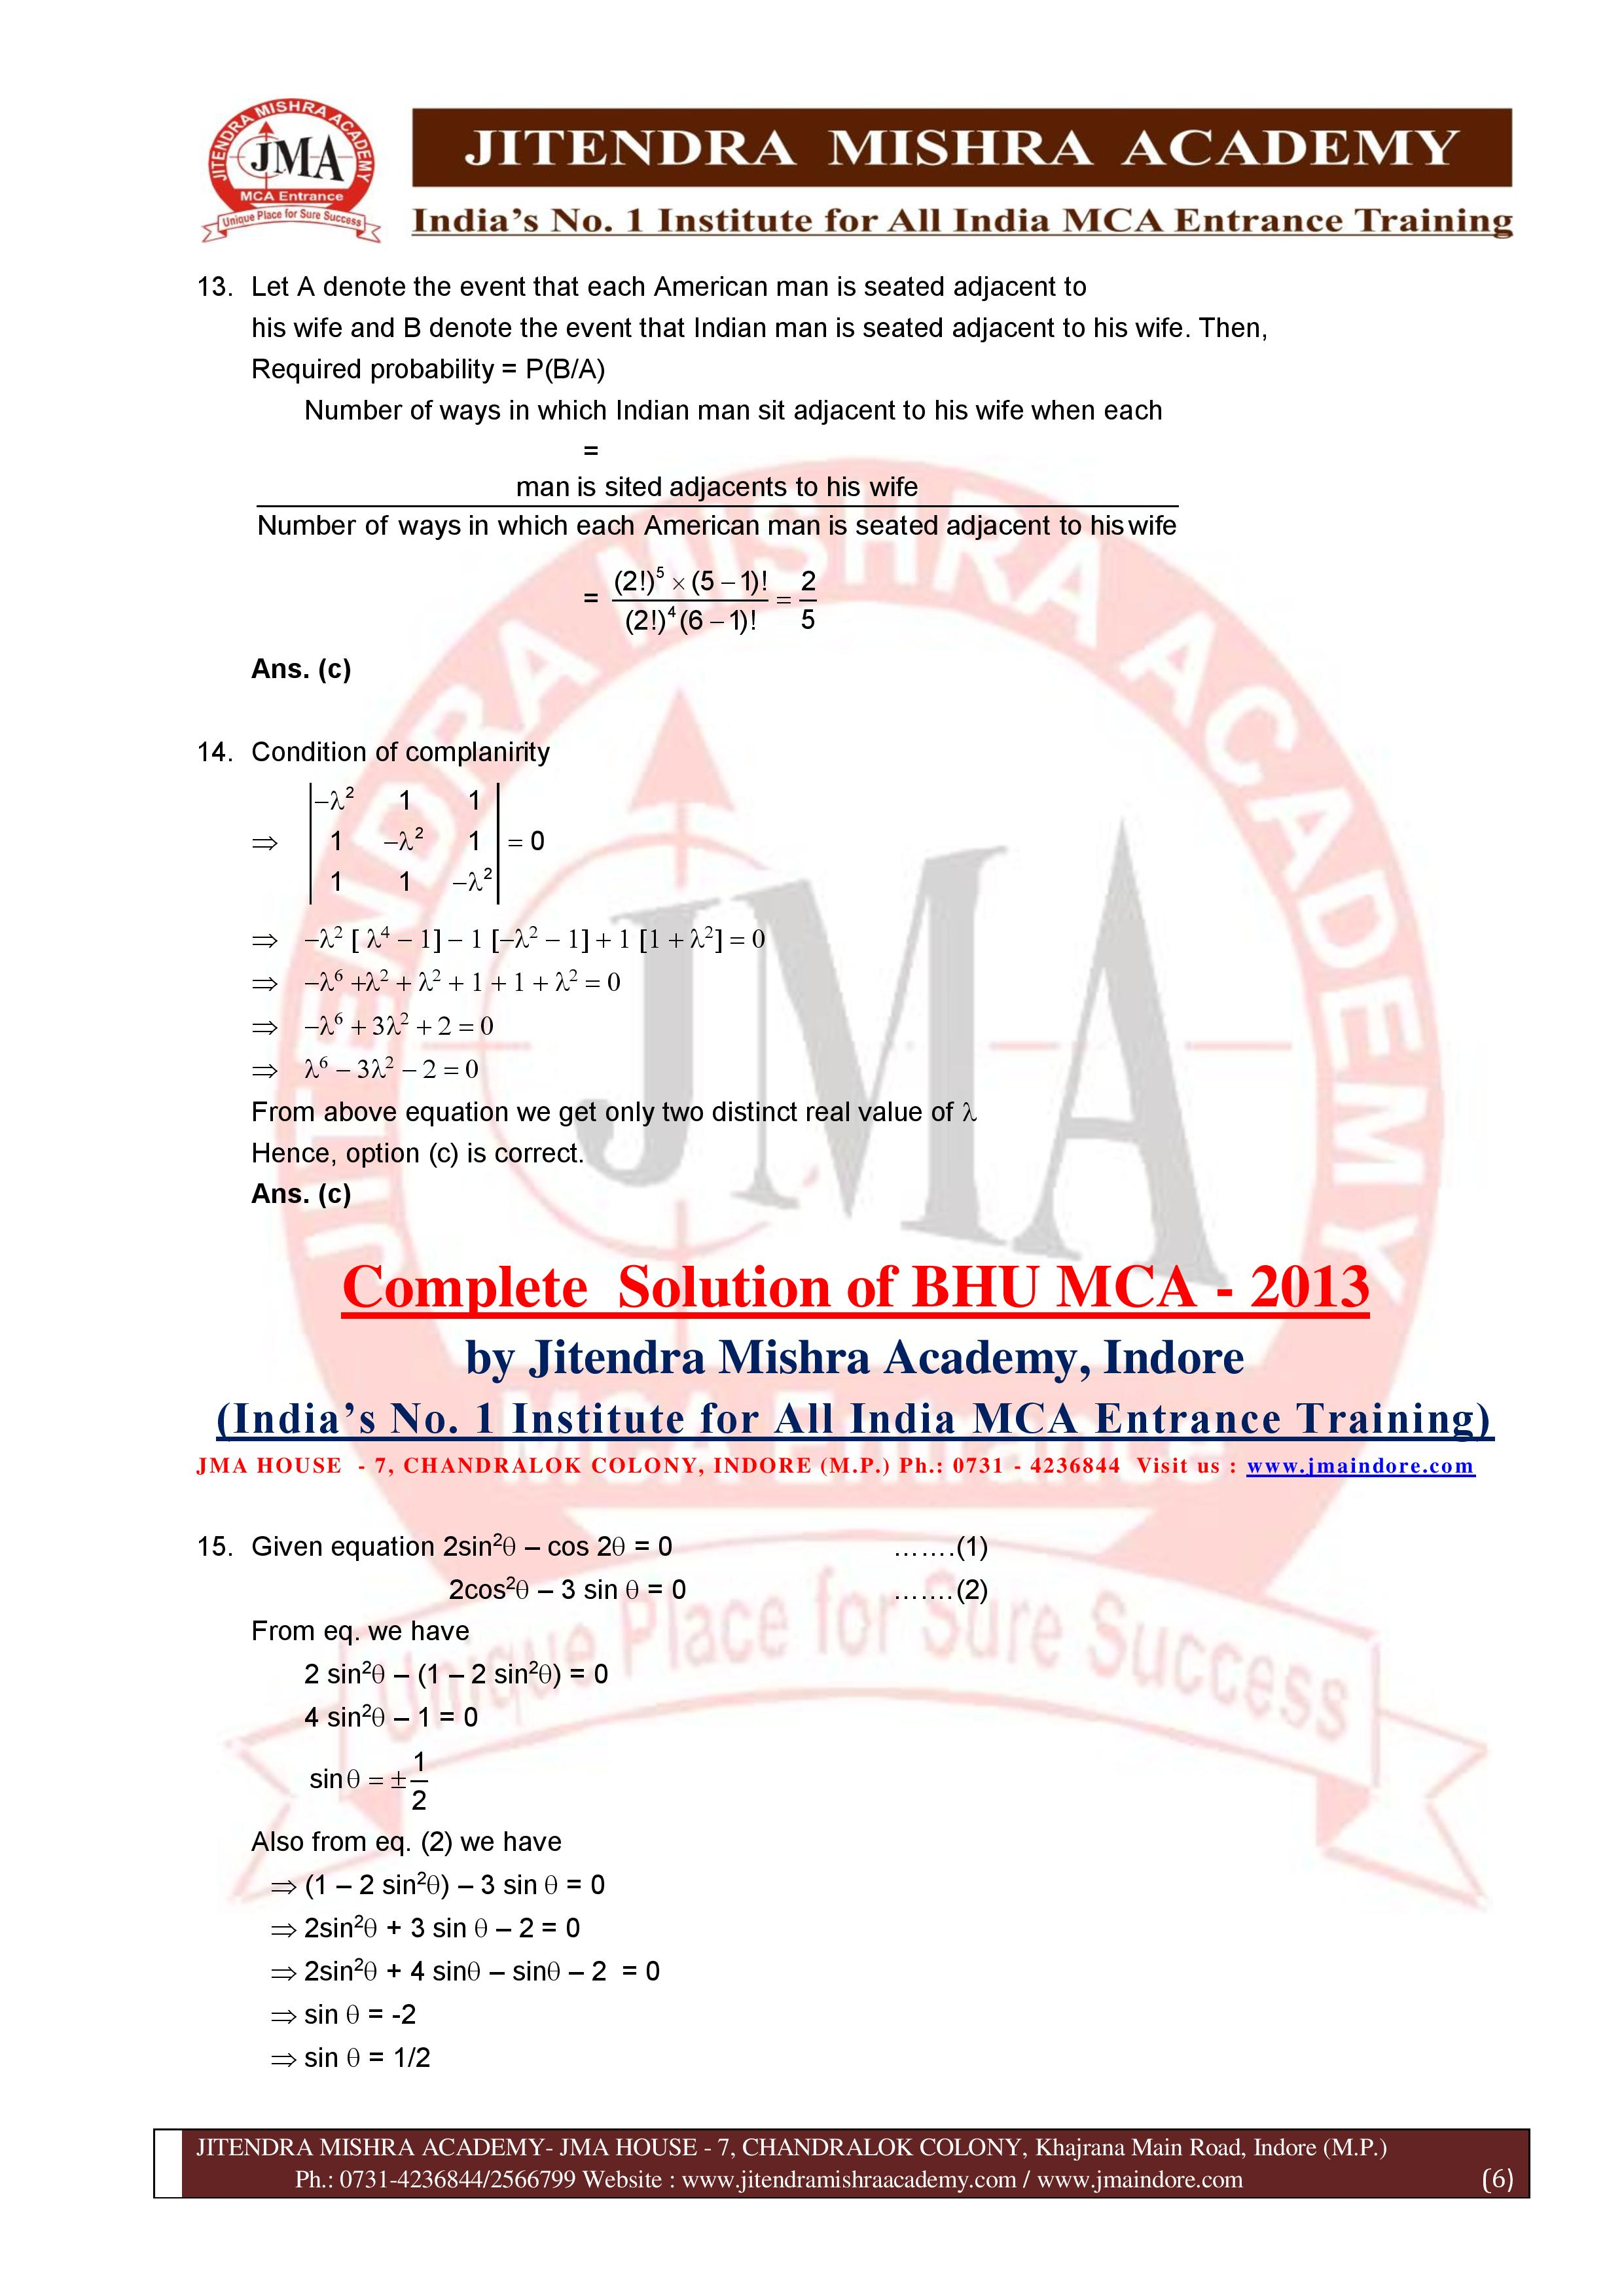 BHU 2013 SOLUTION (SET - 3) (06.07.16)-page-006